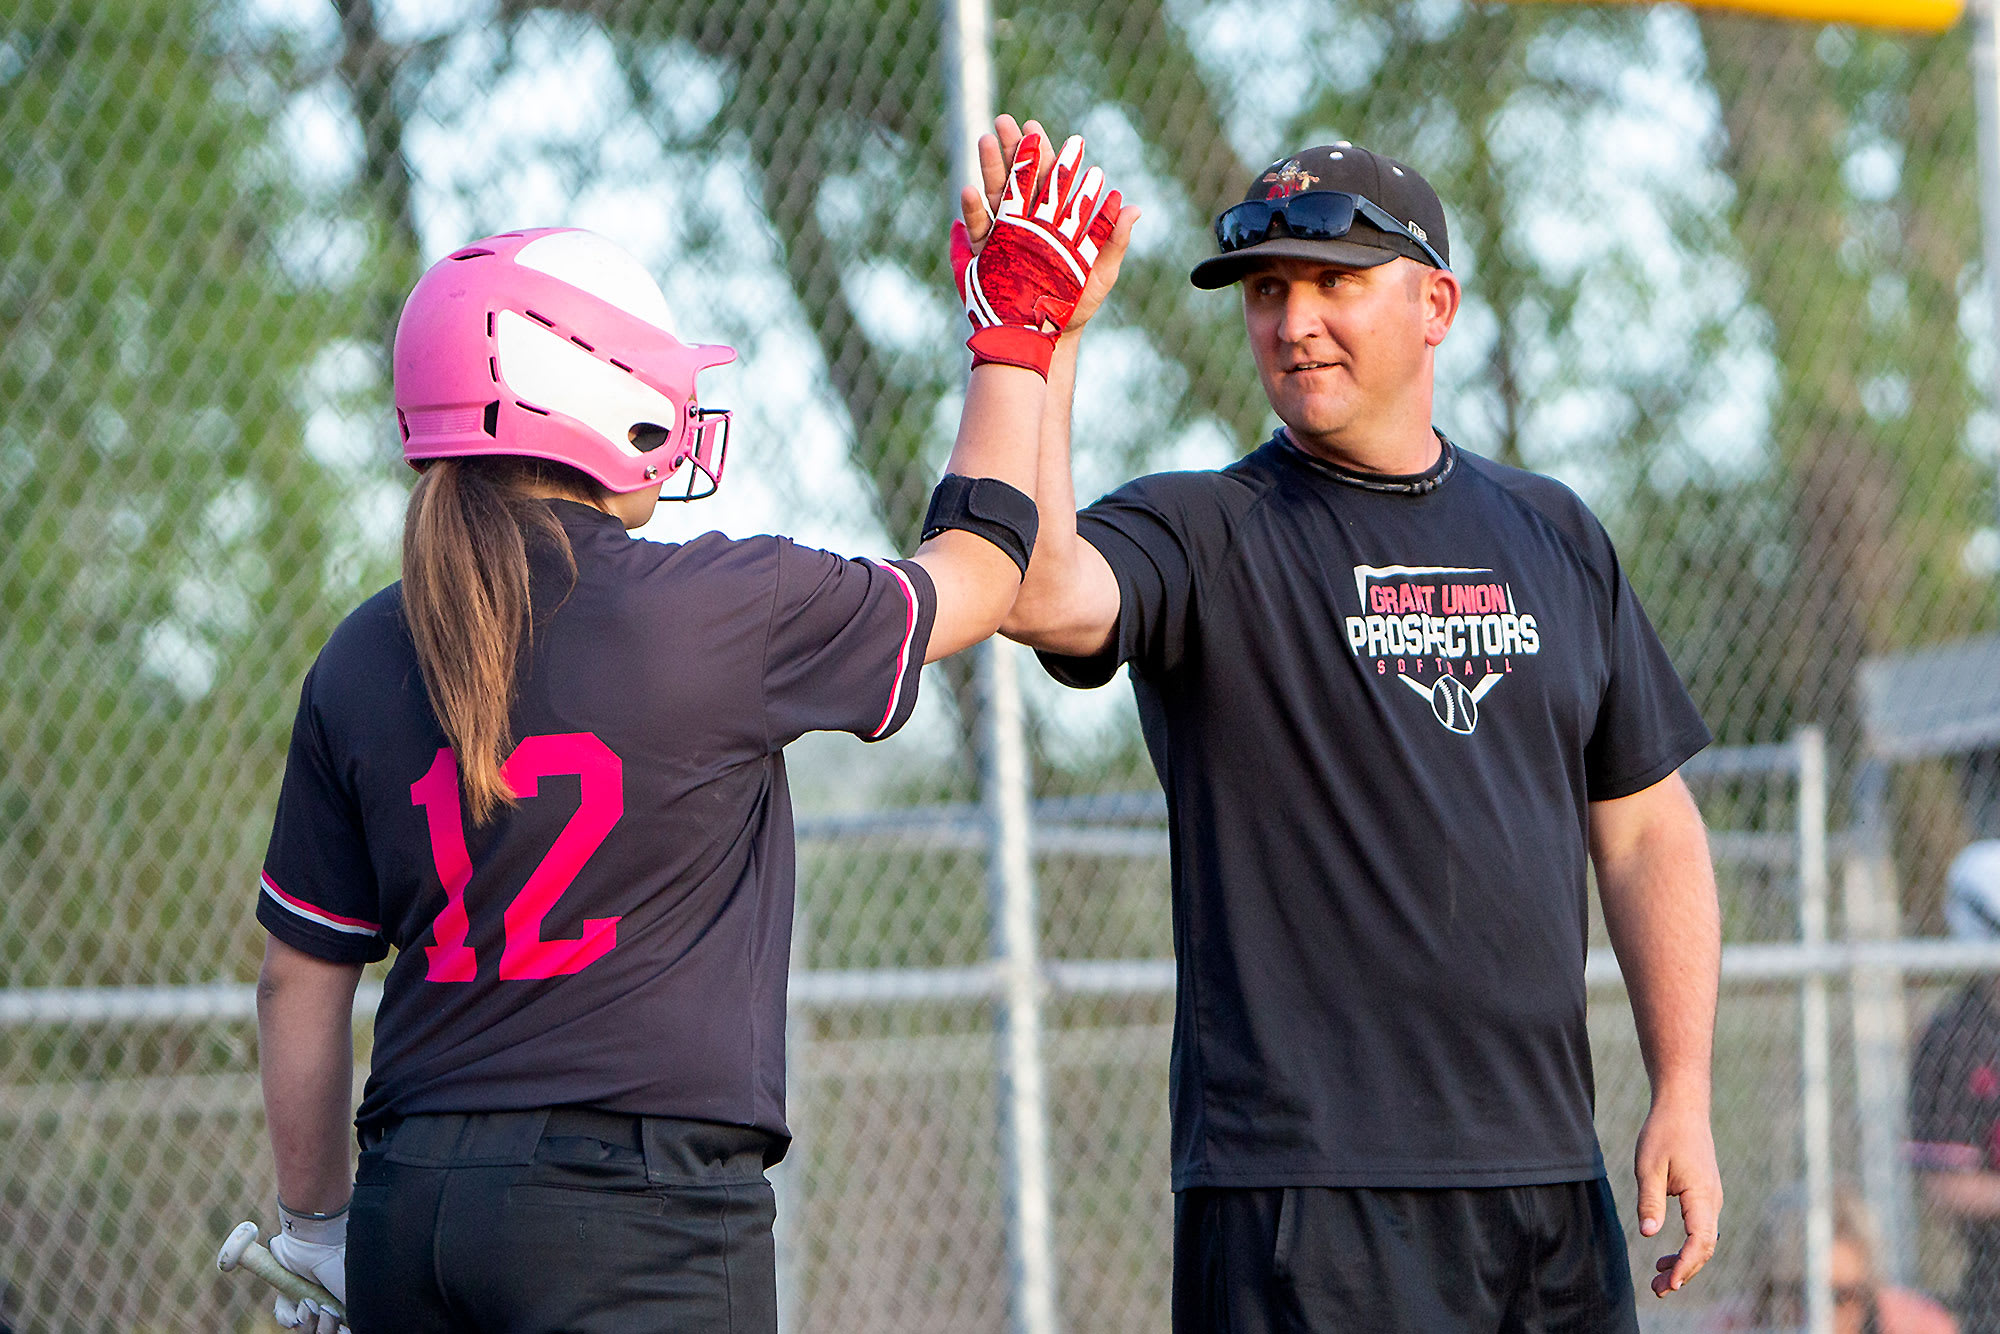 sb-player-coach-high-fiving